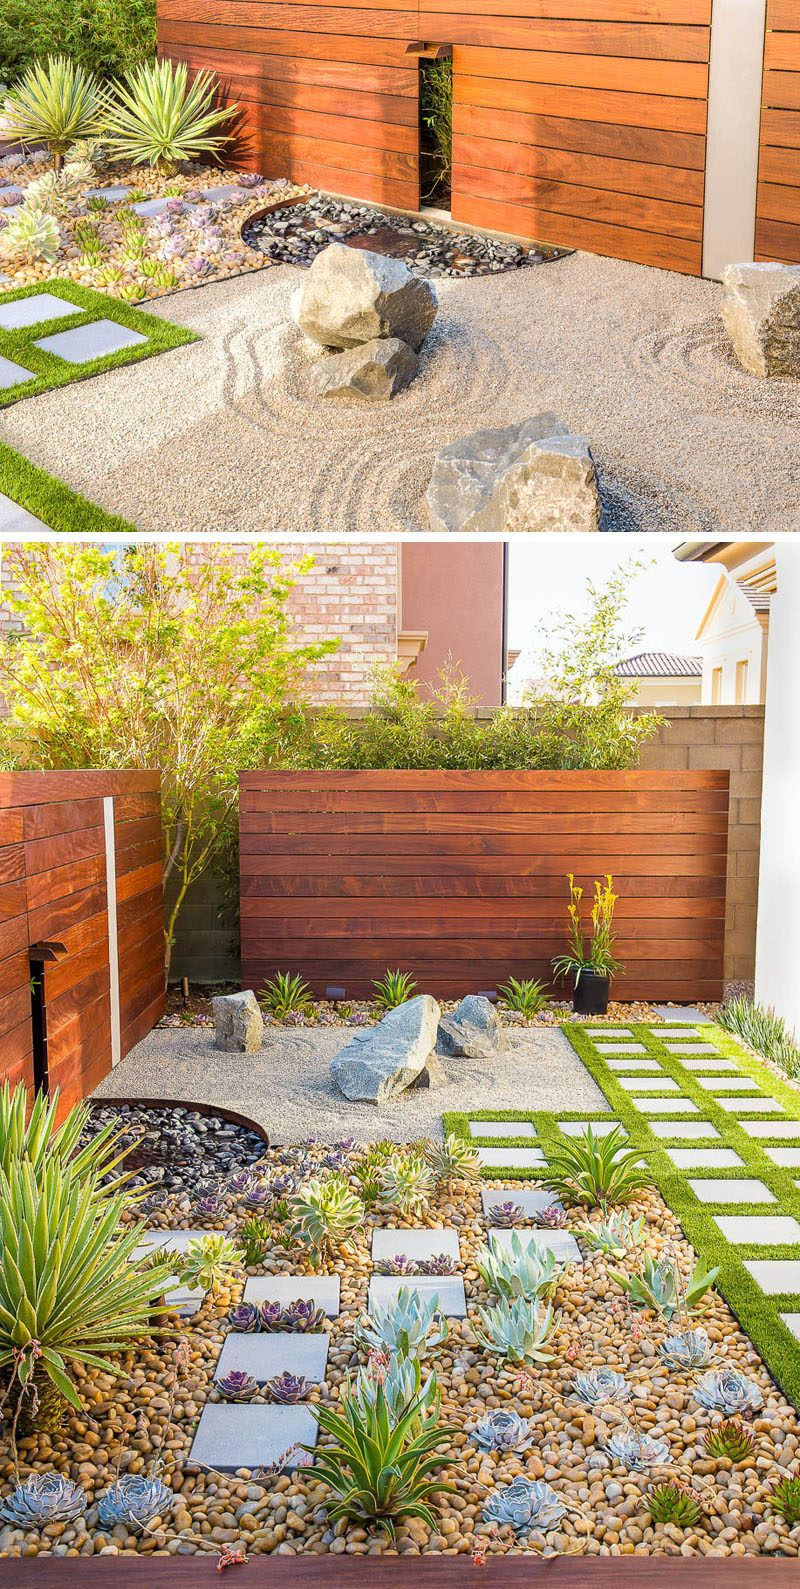 8 Elements To Include When Designing Your Zen Garden // Japanese Rock Garden — In order to have a properly zen garden, a Japanese